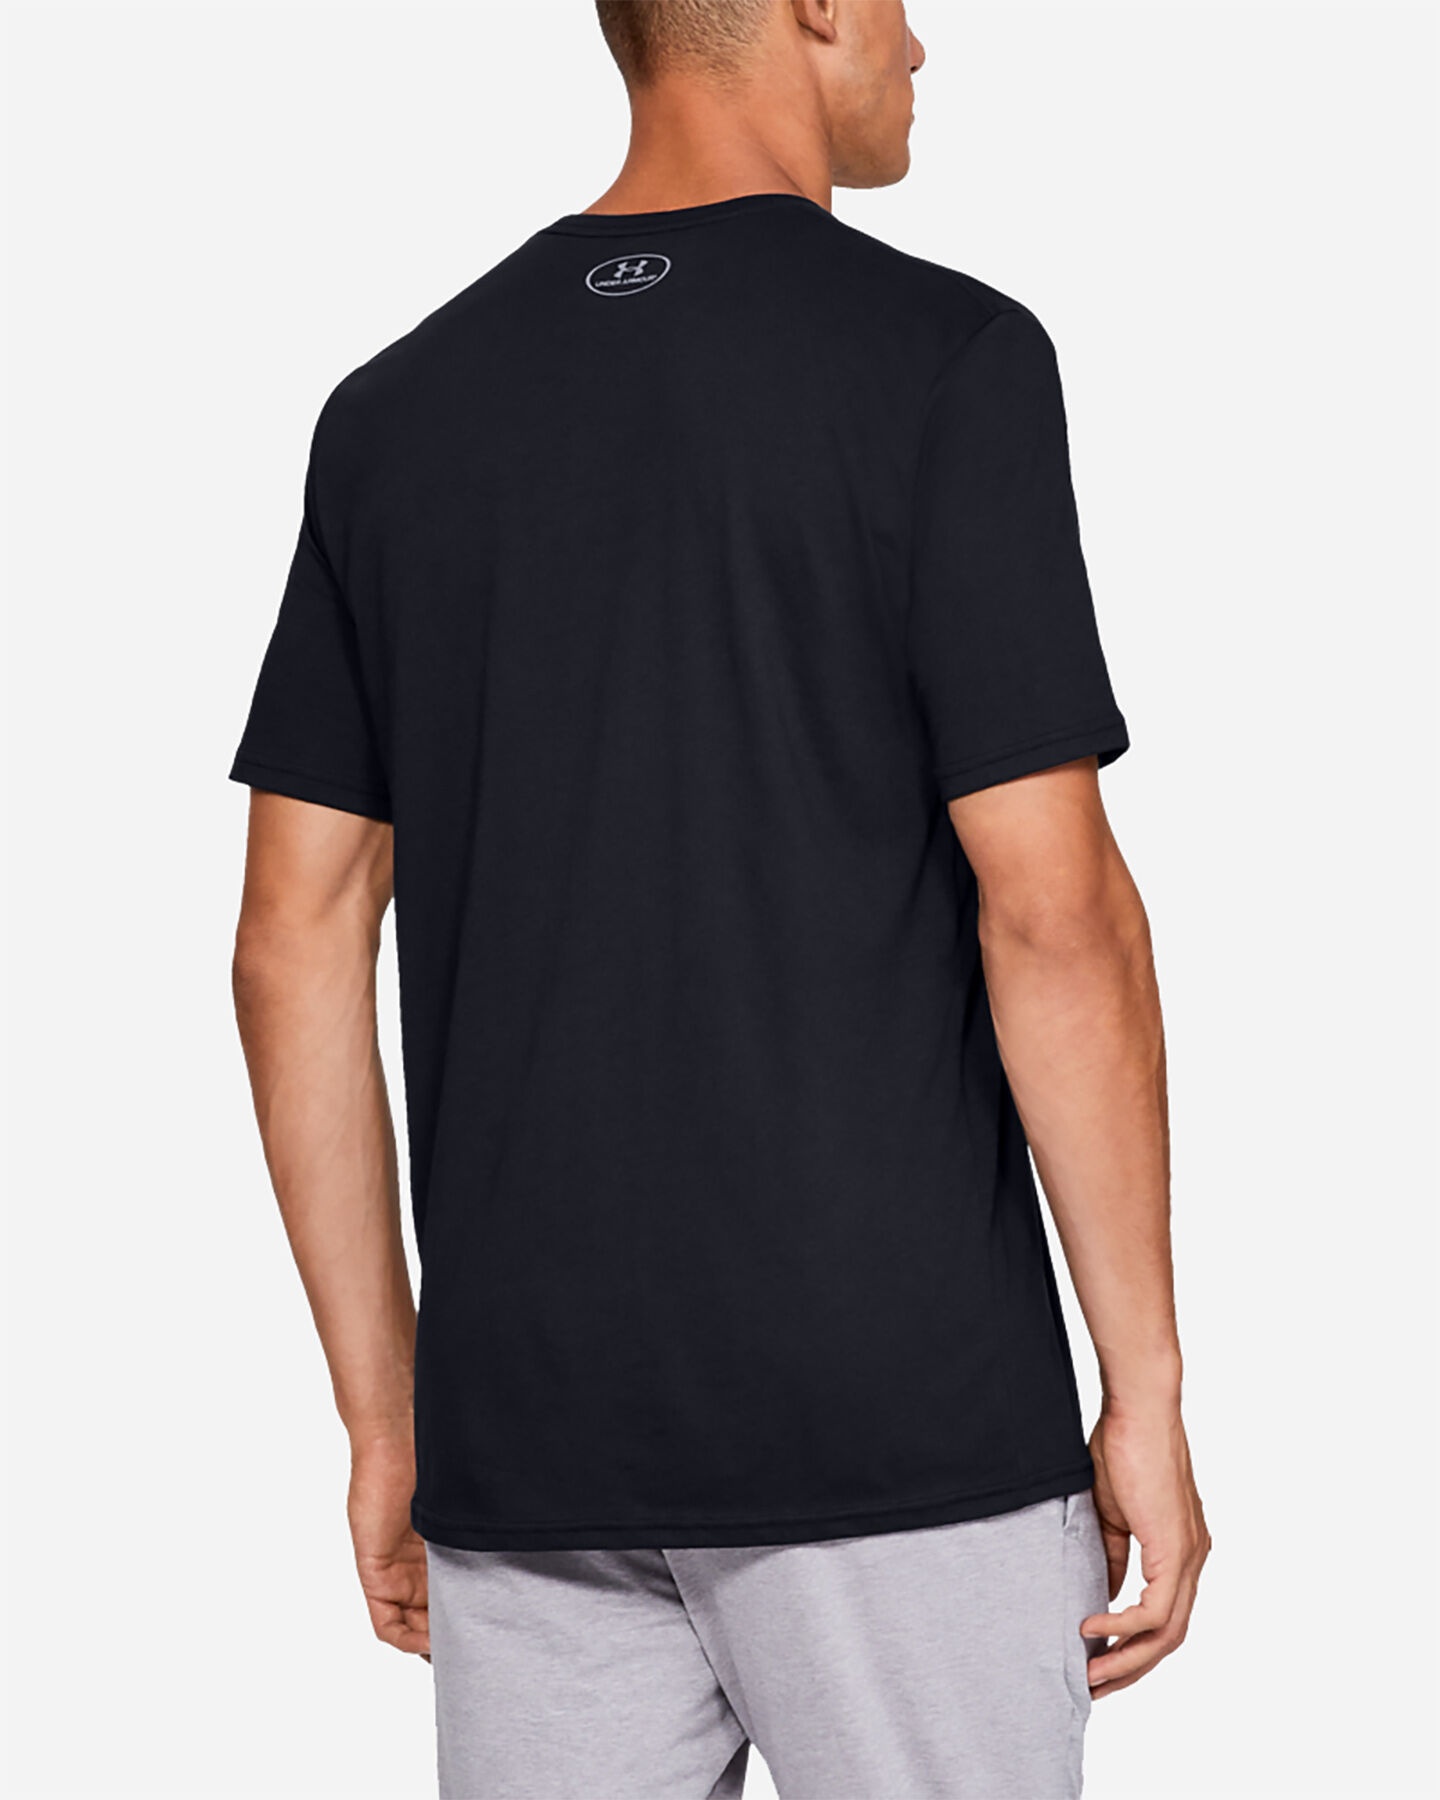 T-Shirt UNDER ARMOUR BIG LOGO M S5035486 scatto 3